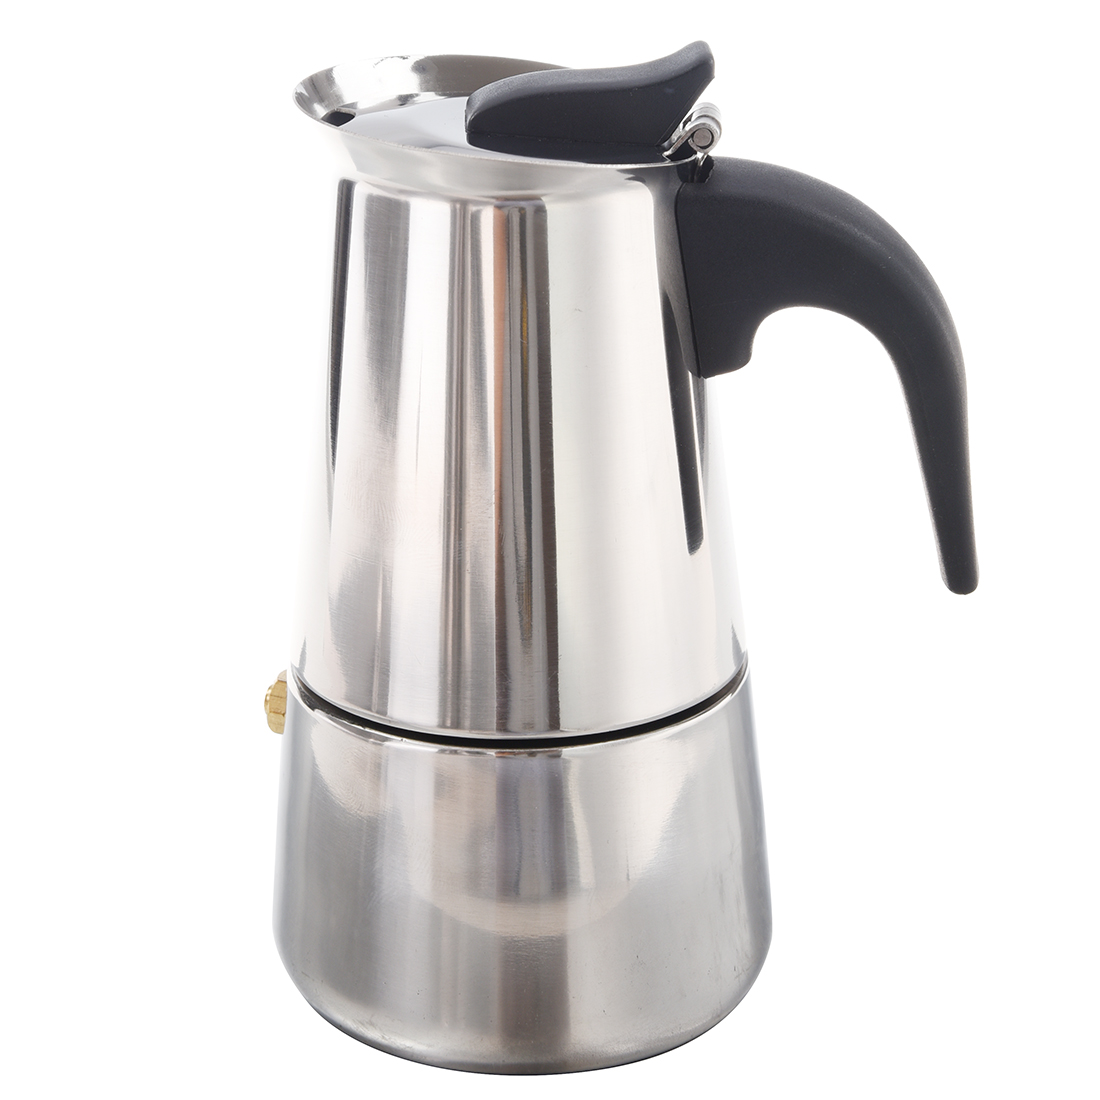 100ml Stainless Steel Coffee Maker Percolator Stove Top